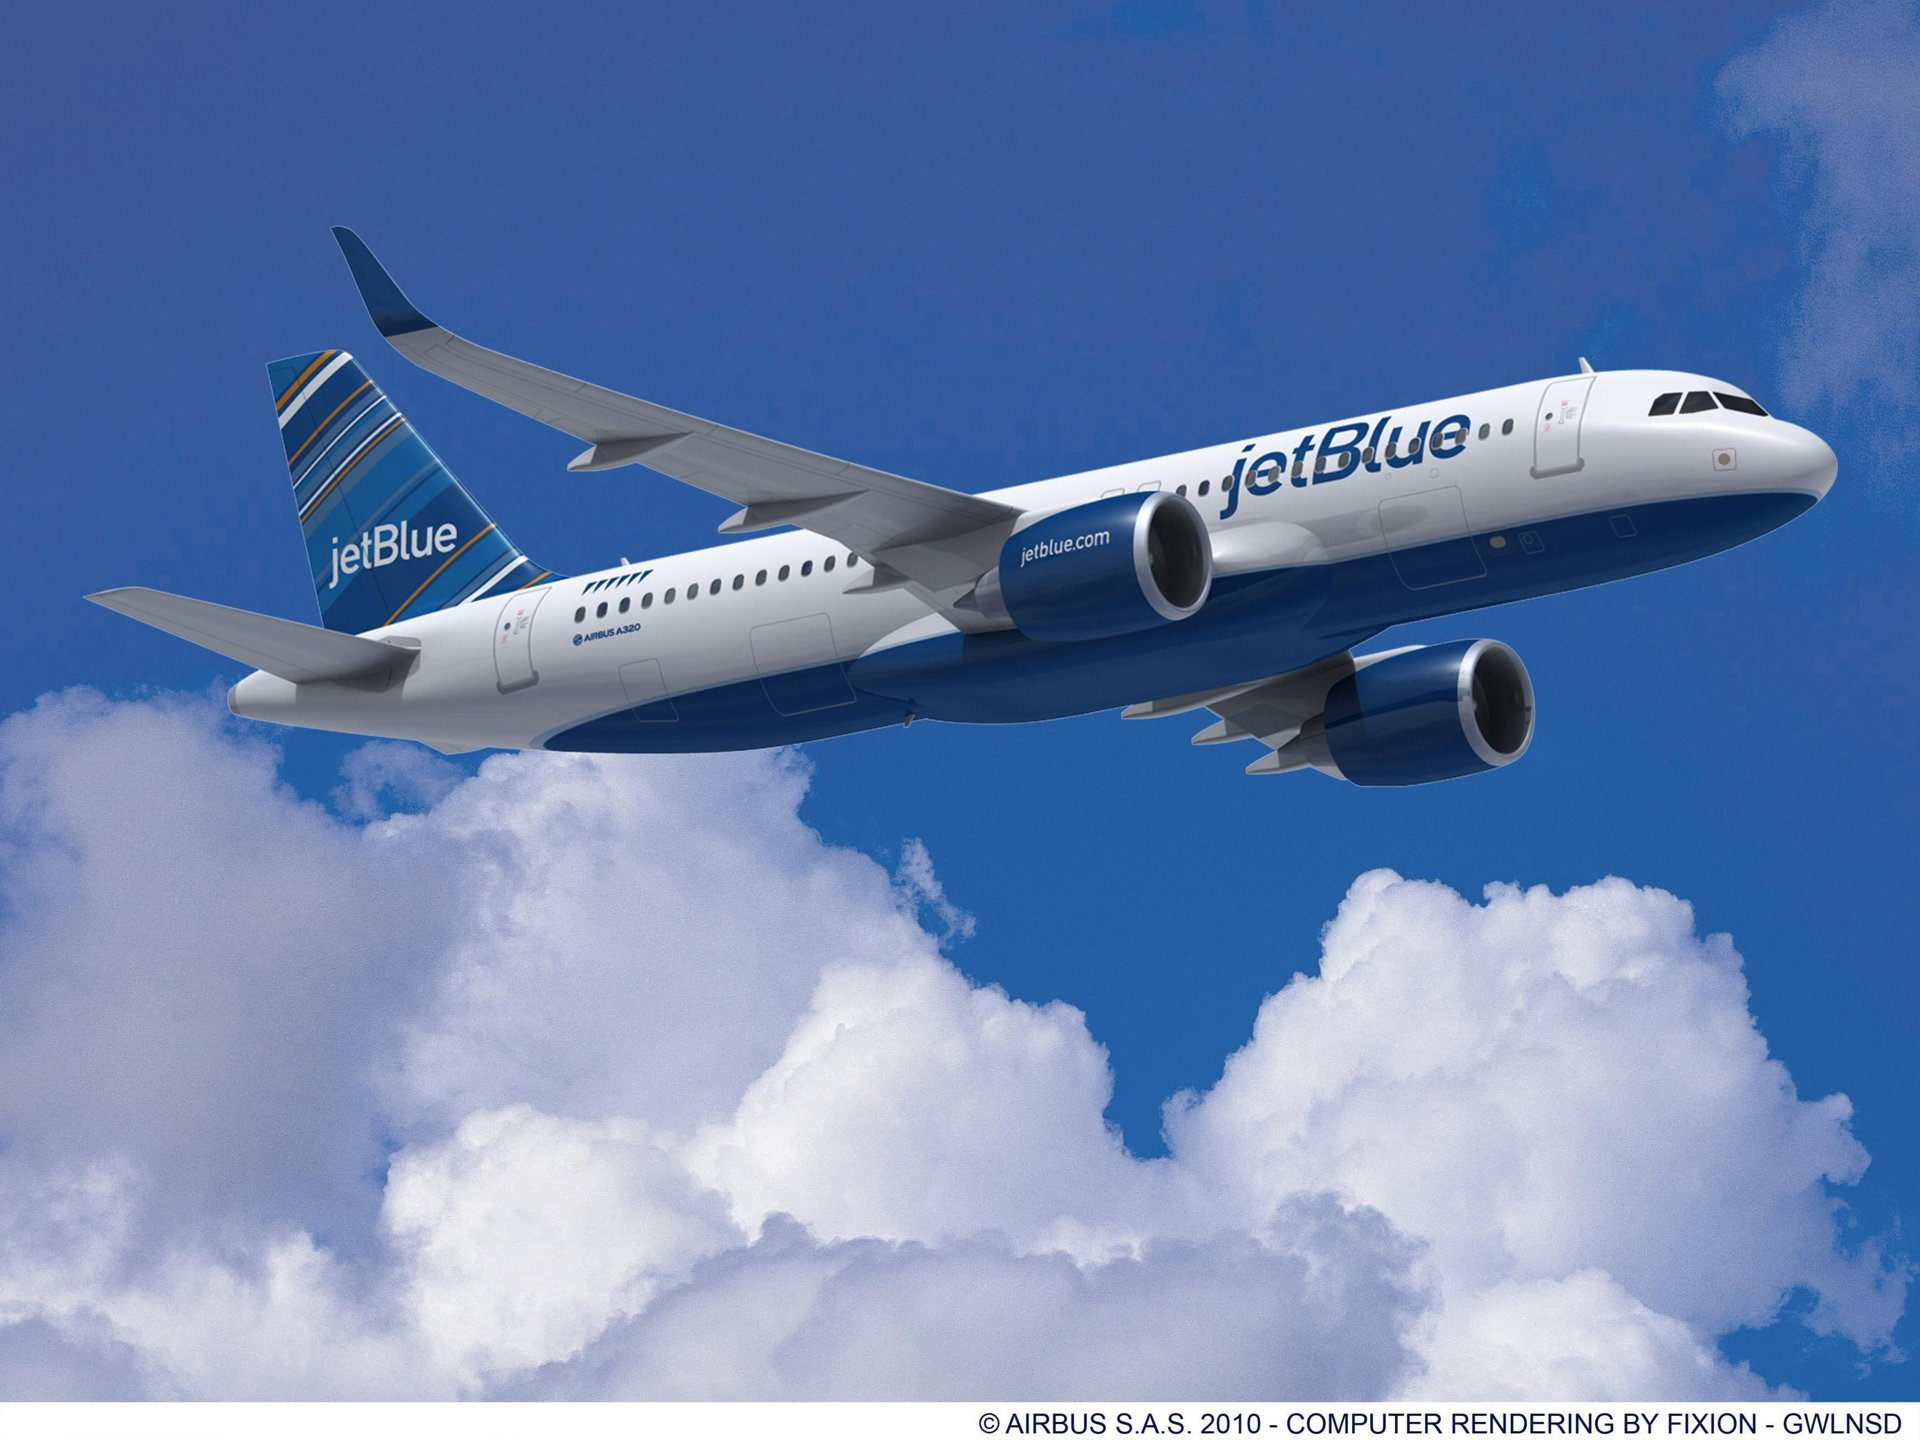 jetblue to order 40 a320neo aircraft